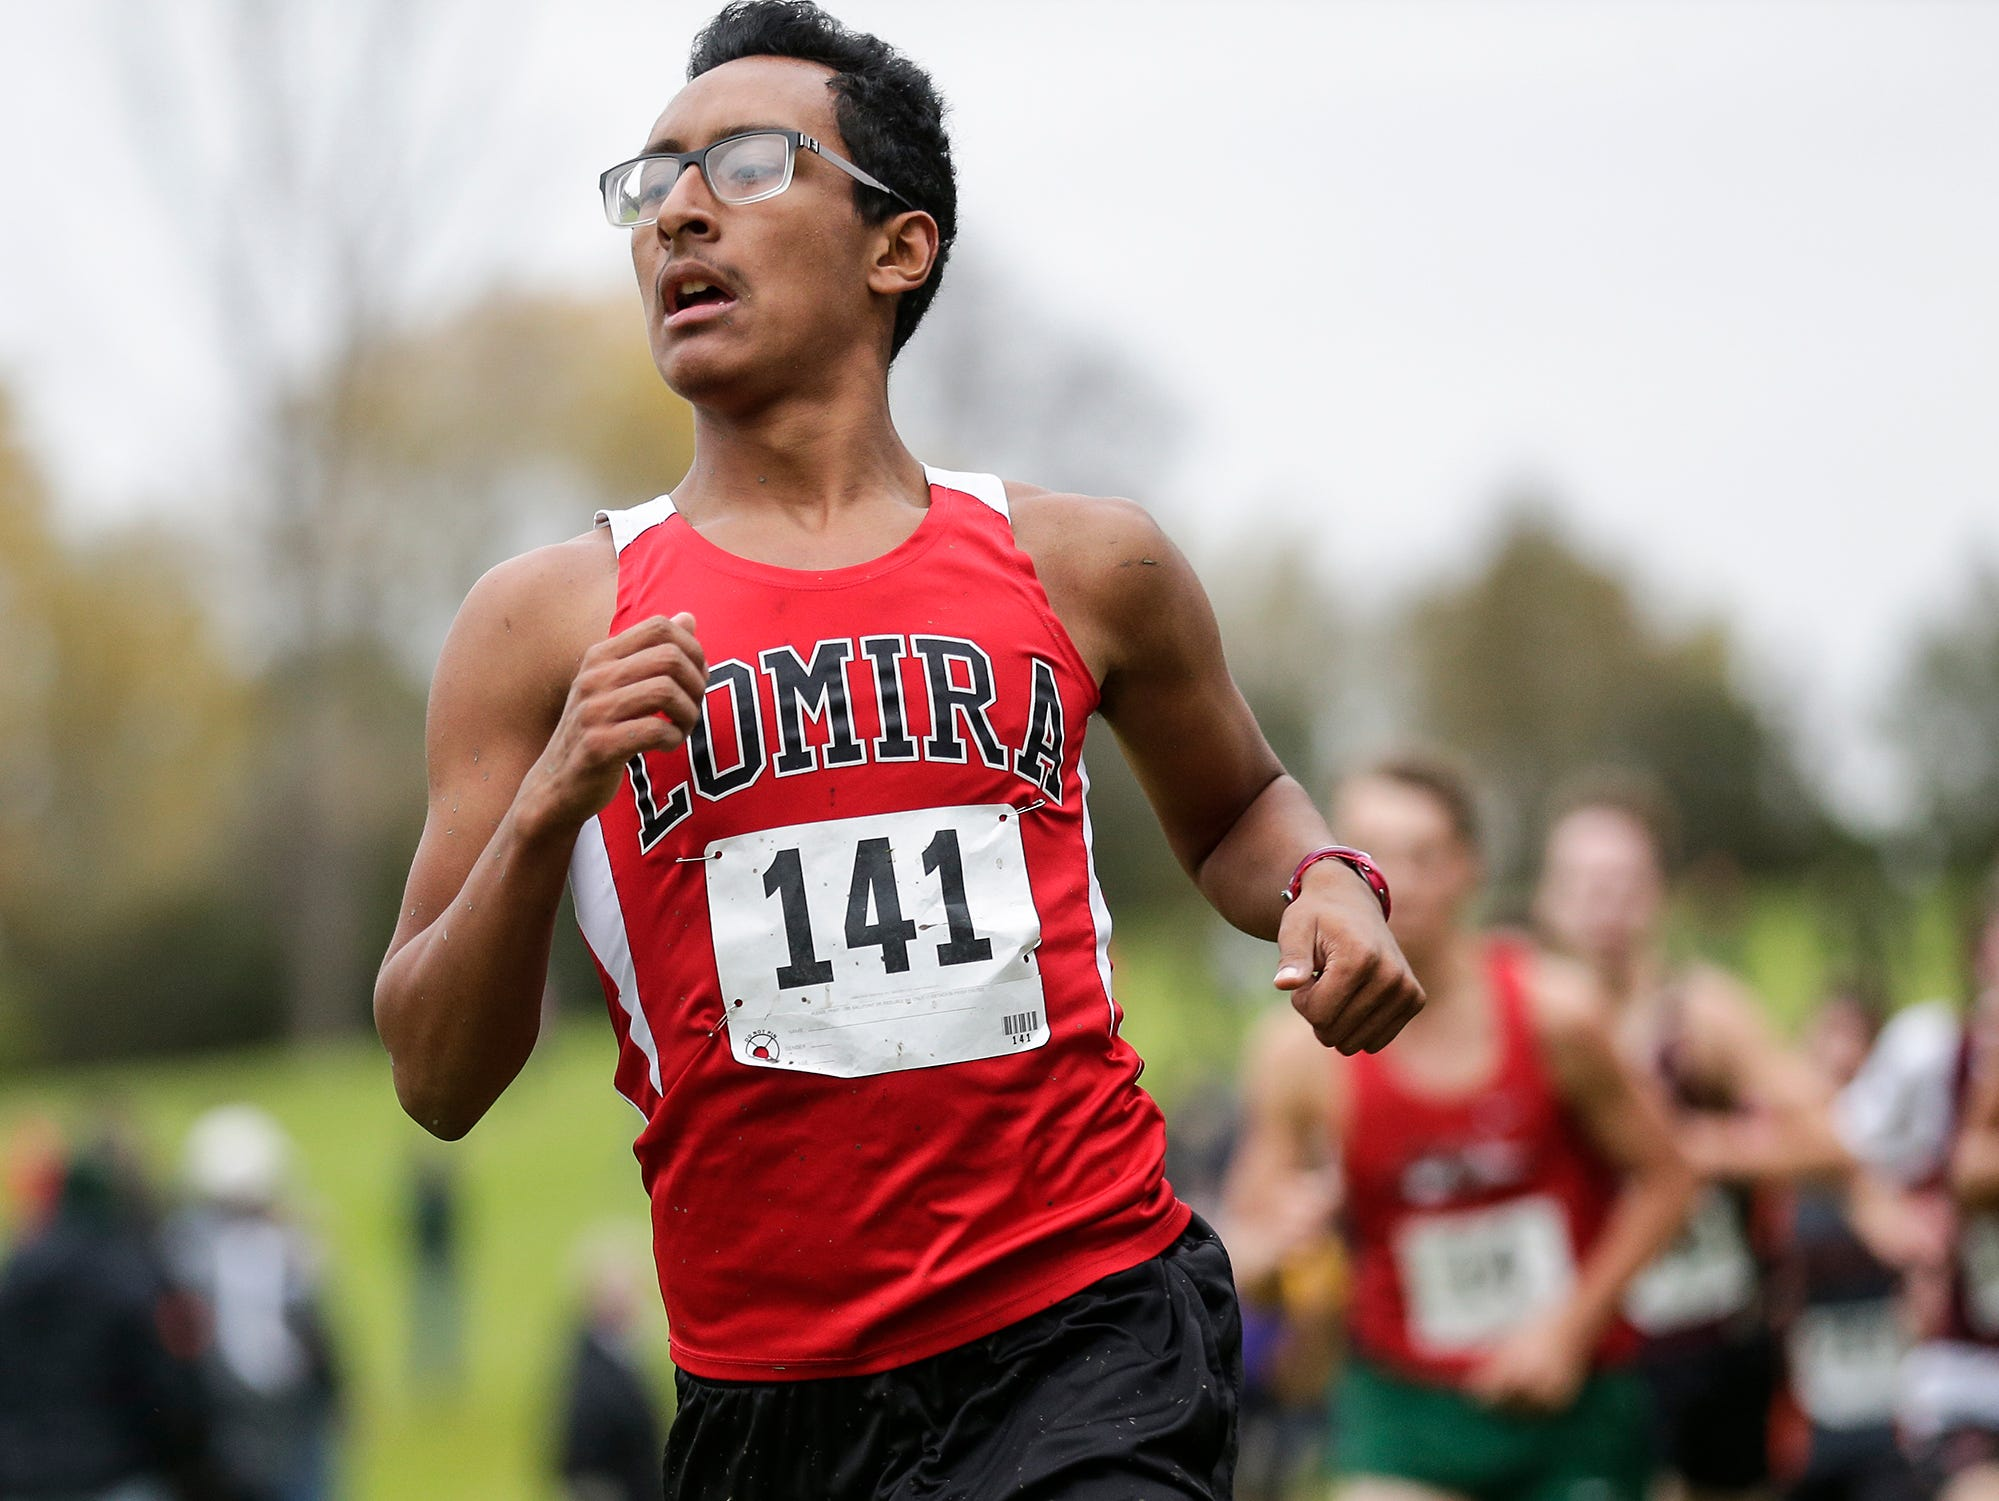 Lomira High School's Steven Aguirre runs in the WIAA Division two Mayville sectional cross country meet at the Mayville golf course Friday, October 19, 2018. Doug Raflik/USA TODAY NETWORK-Wisconsin